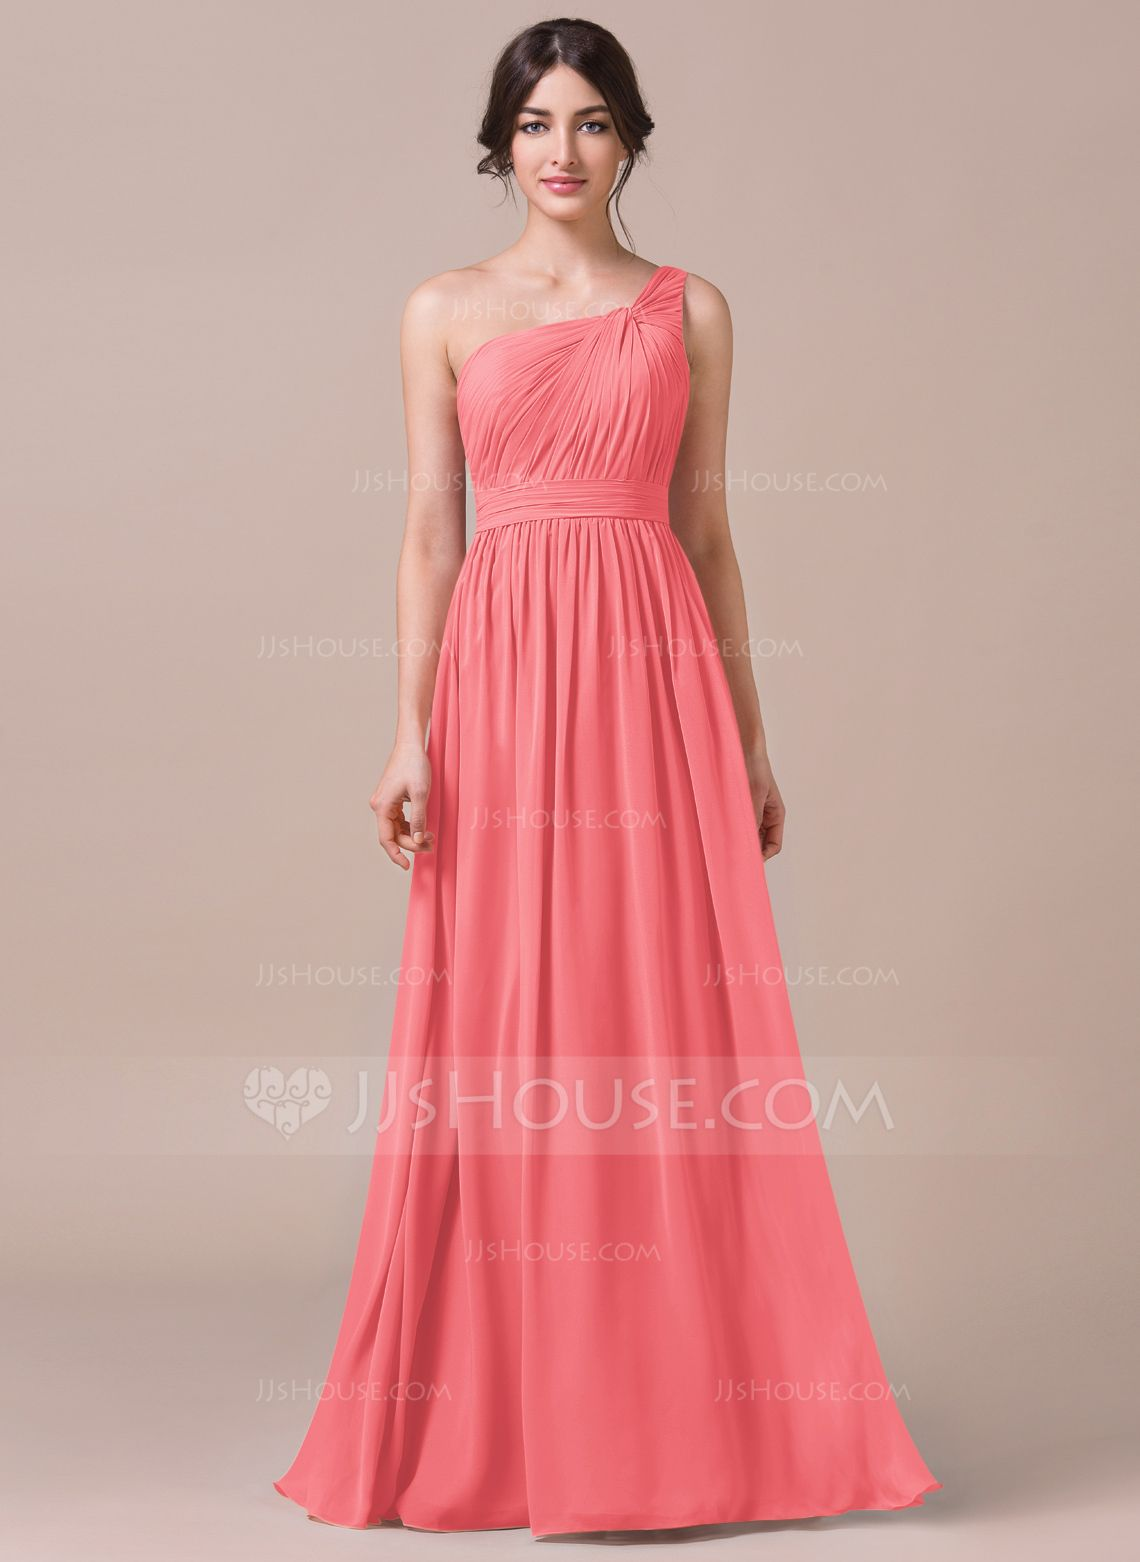 Buy cheap strapless floor length chiffon coral bridesmaid dress - A Line One Shoulder Floor Length Chiffon Bridesmaid Dress 007057740